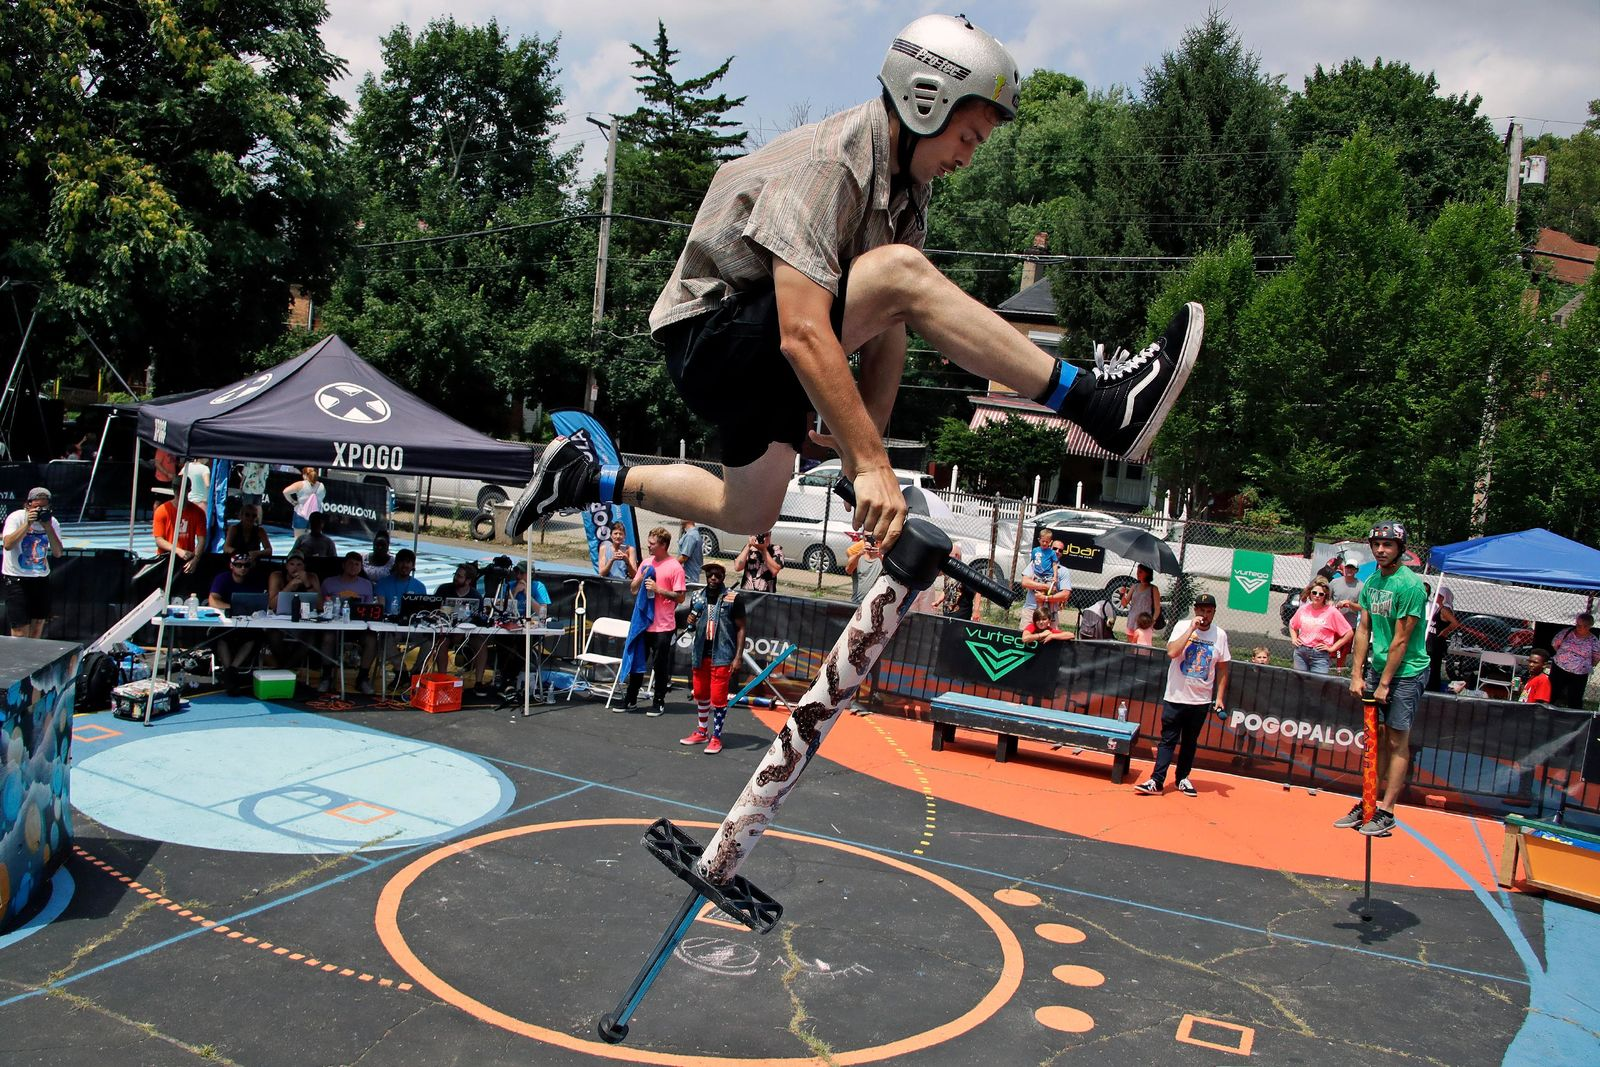 Dalton Smith, 22, of Nashville, Tenn., performs during during Pogopalooza, The World Championships of Pogo in Wilkinsburg, Pa., Saturday, July 20, 2019. (AP Photo/Gene J. Puskar)